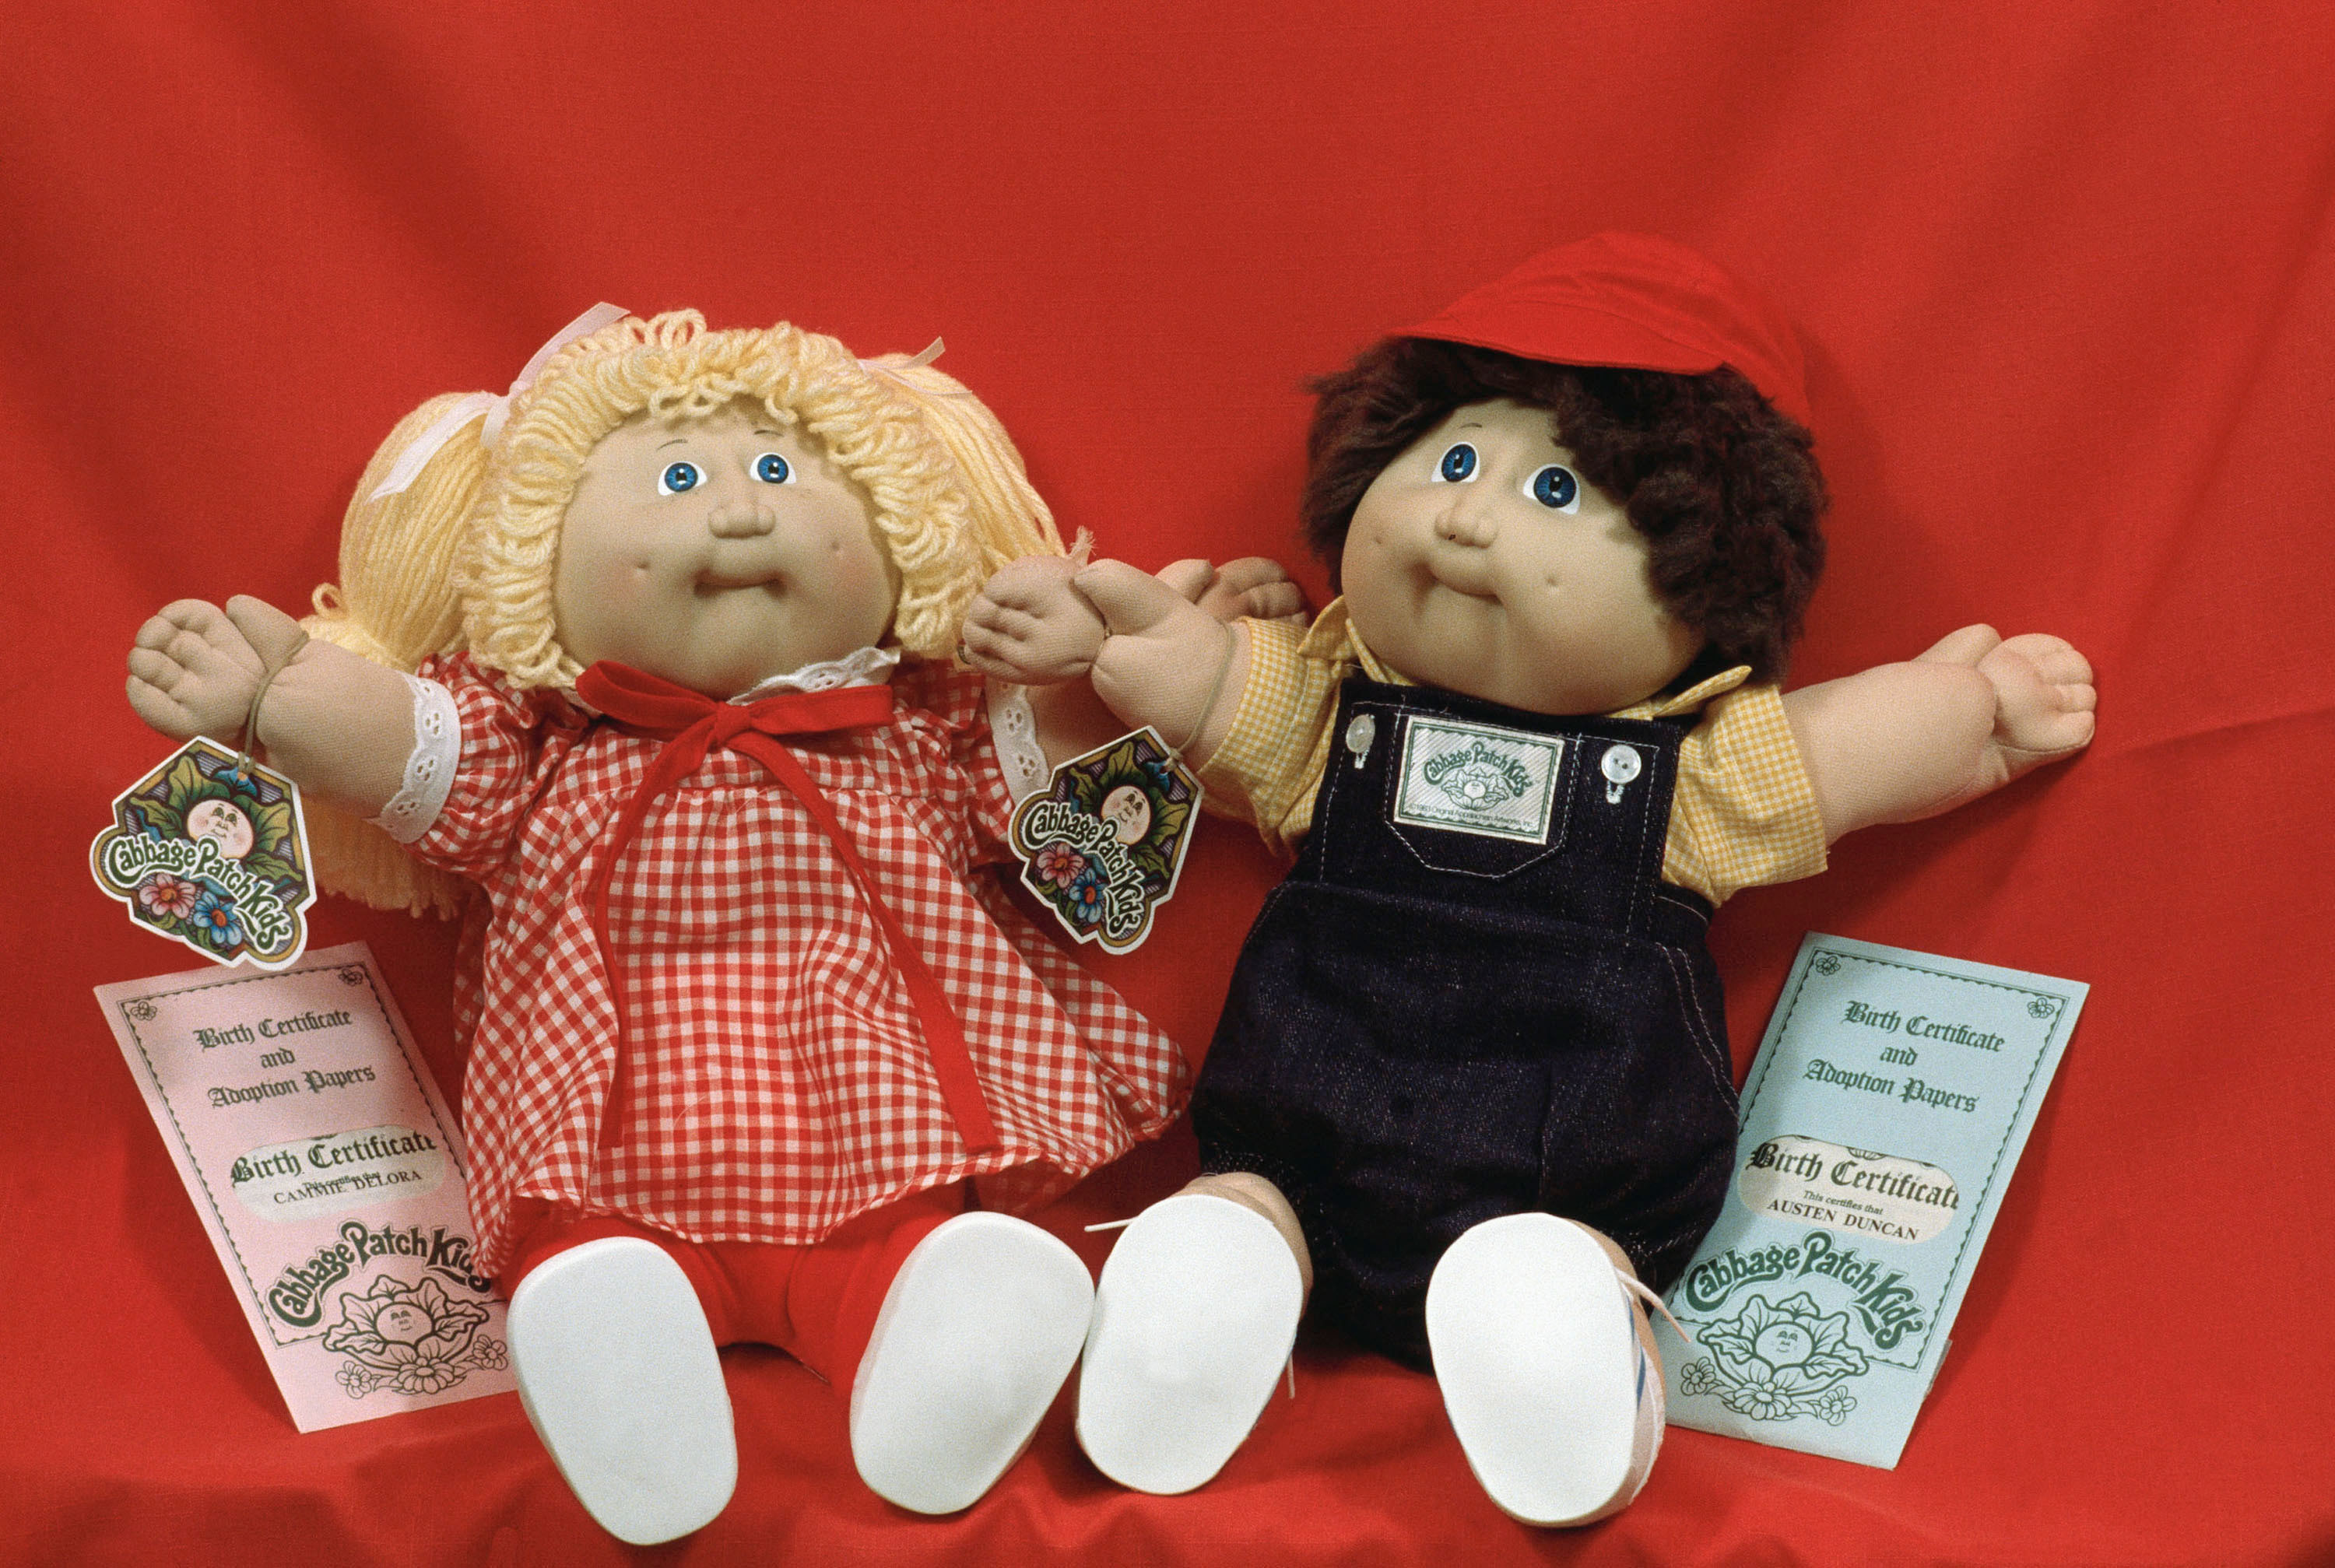 Original Cabbage Patch Kids Awesome 15 Retro Kids toys that are Making A Serious Eback Of New 43 Pictures original Cabbage Patch Kids